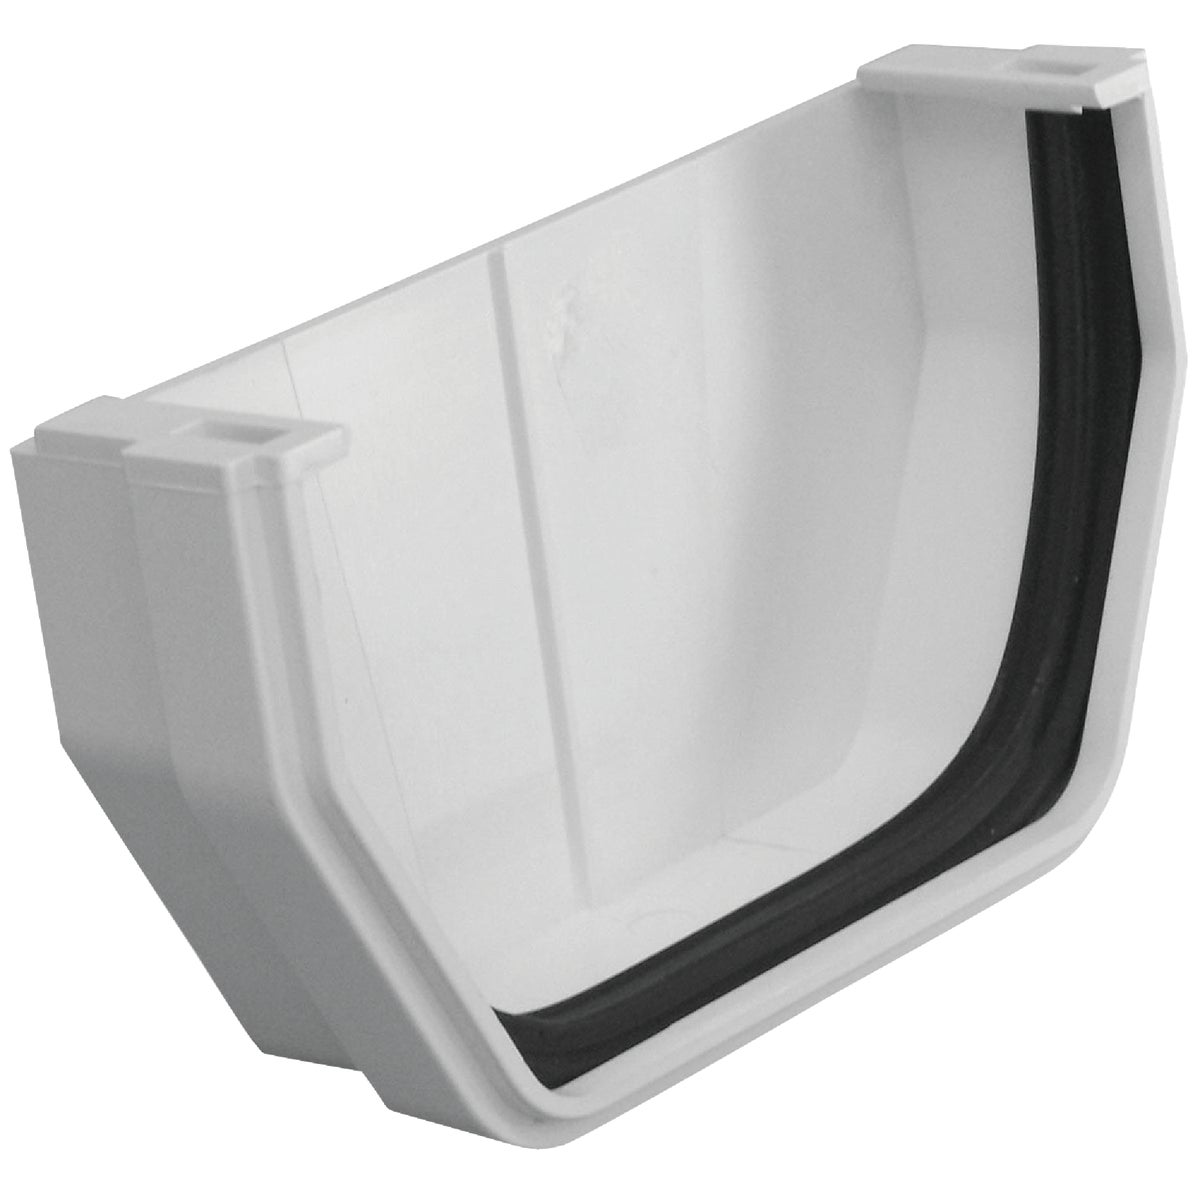 WHT OUTSIDE END CAP - RW102 by Genova Products